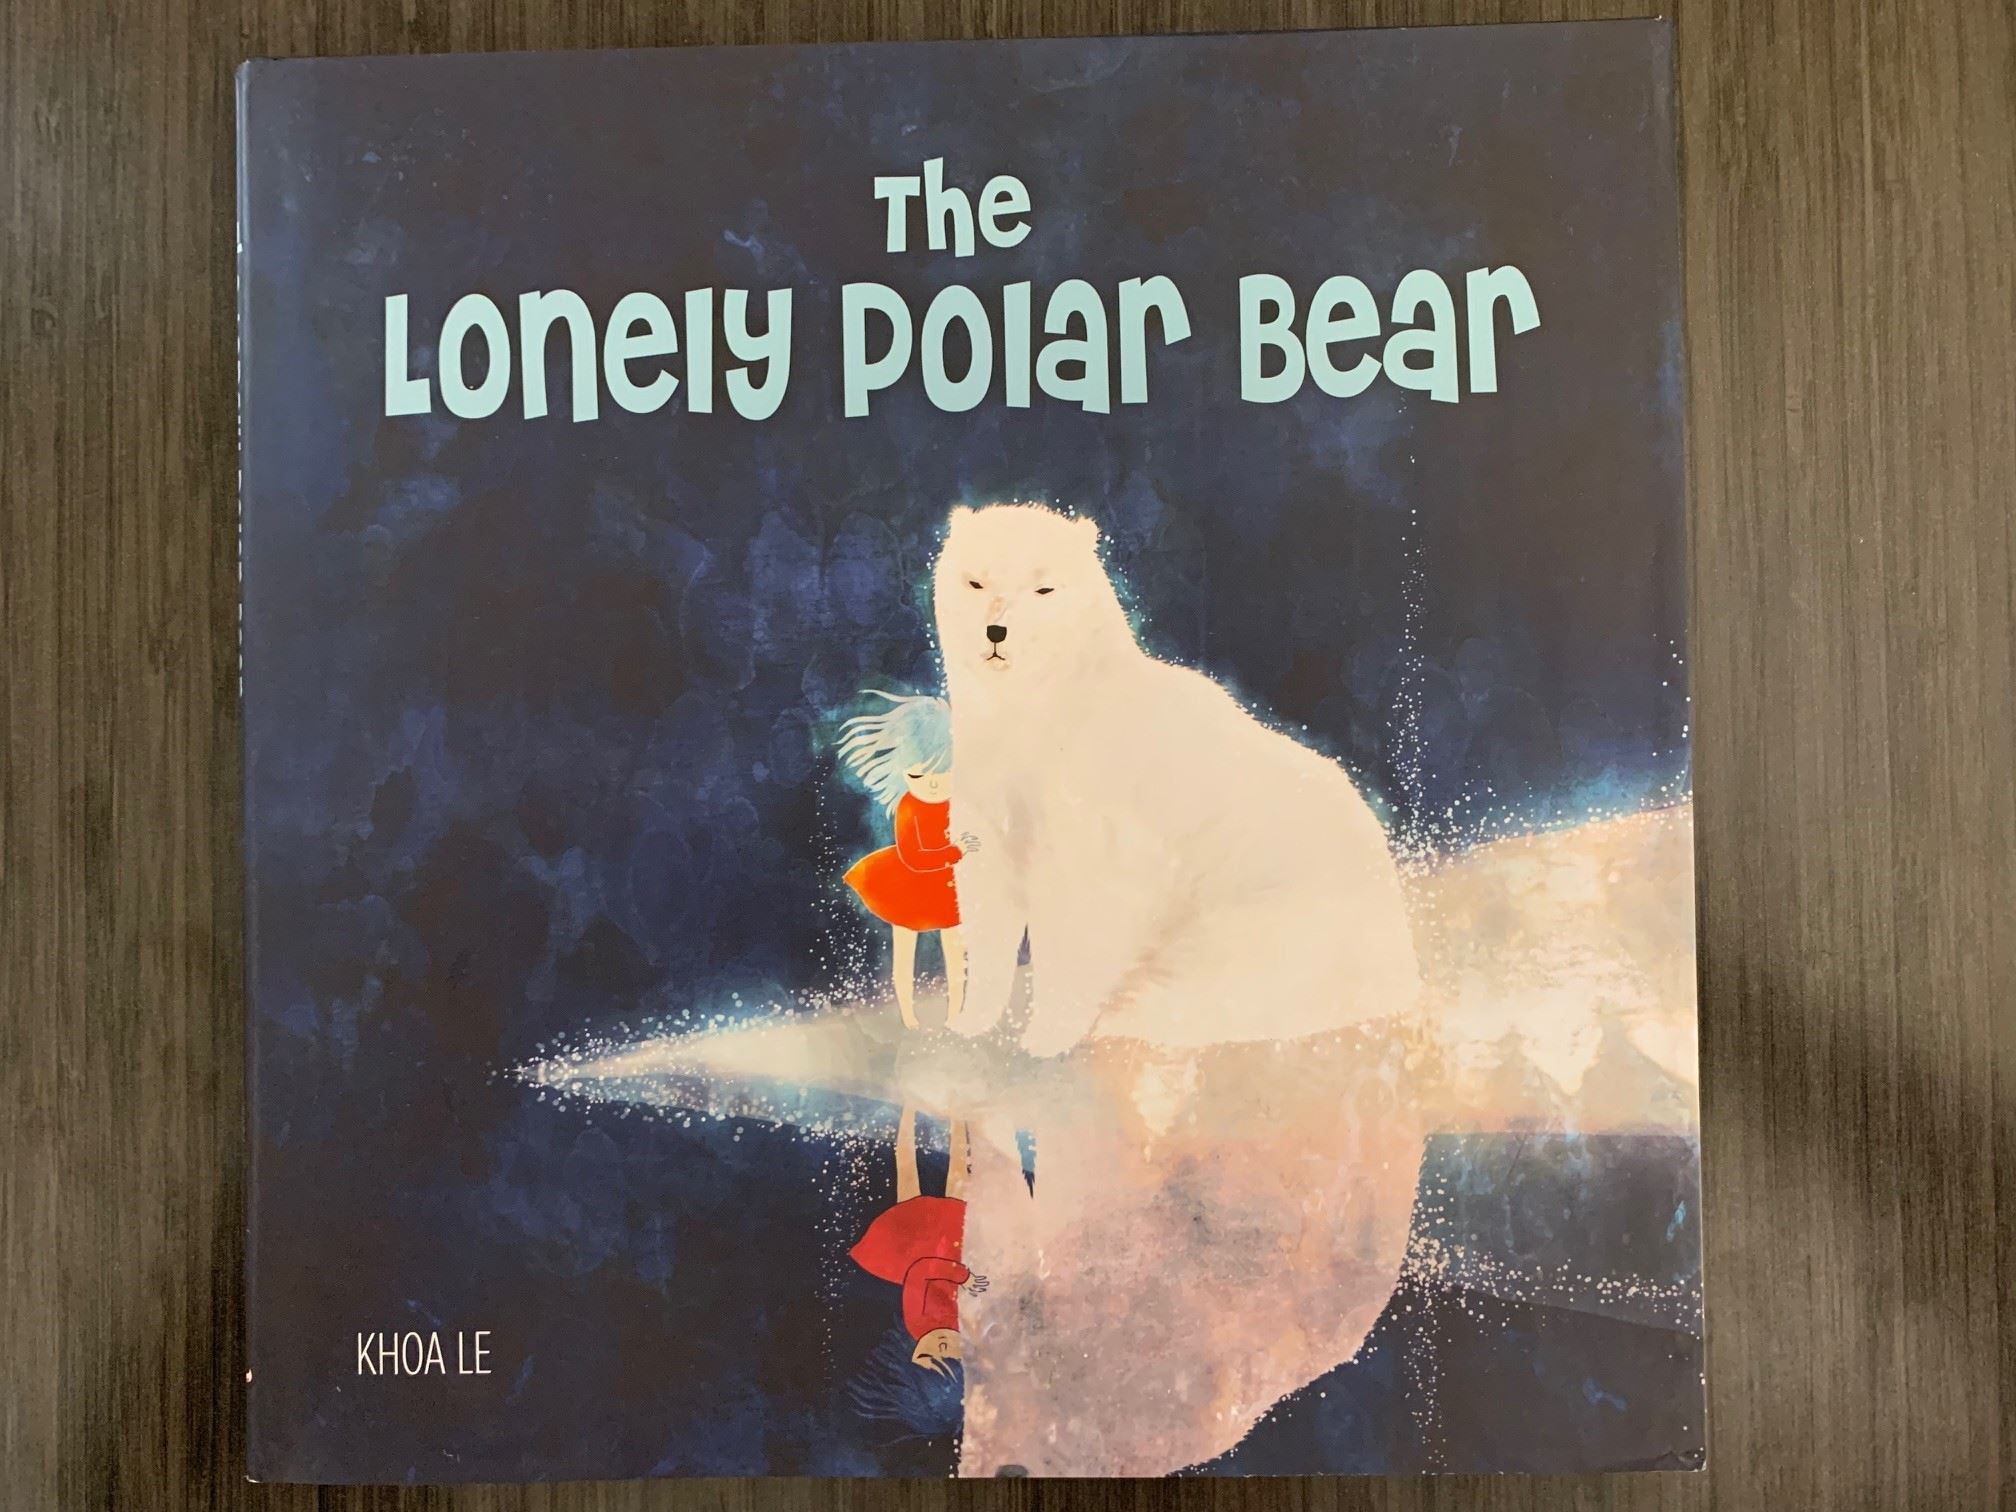 Book 45 - The Lonely Polar Bear